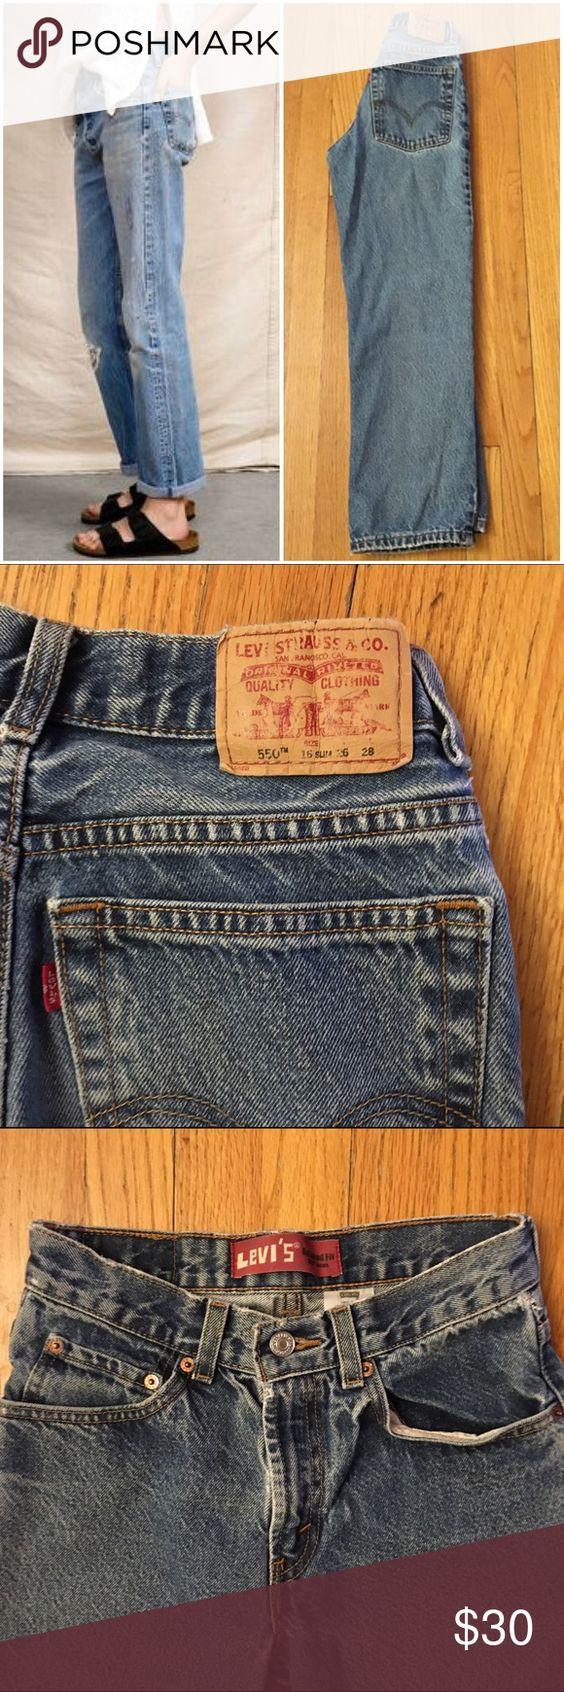 """Vintage Levi's Jeans Style #: 550 relaxed fit Size/Fit Marked: 16 slim (boys size) Size BEST FIT: 24/00 Apx. measurements when laying flat: 12"""" across waistband 10"""" front rise  26.5"""" inseam 18.5"""" across bottom of back pockets Condition: excellent vintage straight leg style 🎉Check out my closet for other vintage denim in a VARIETY of sizes. Left cover photo is style inspo, rest are mine! Price is firm so bundle for a discount!! Levi's Jeans"""